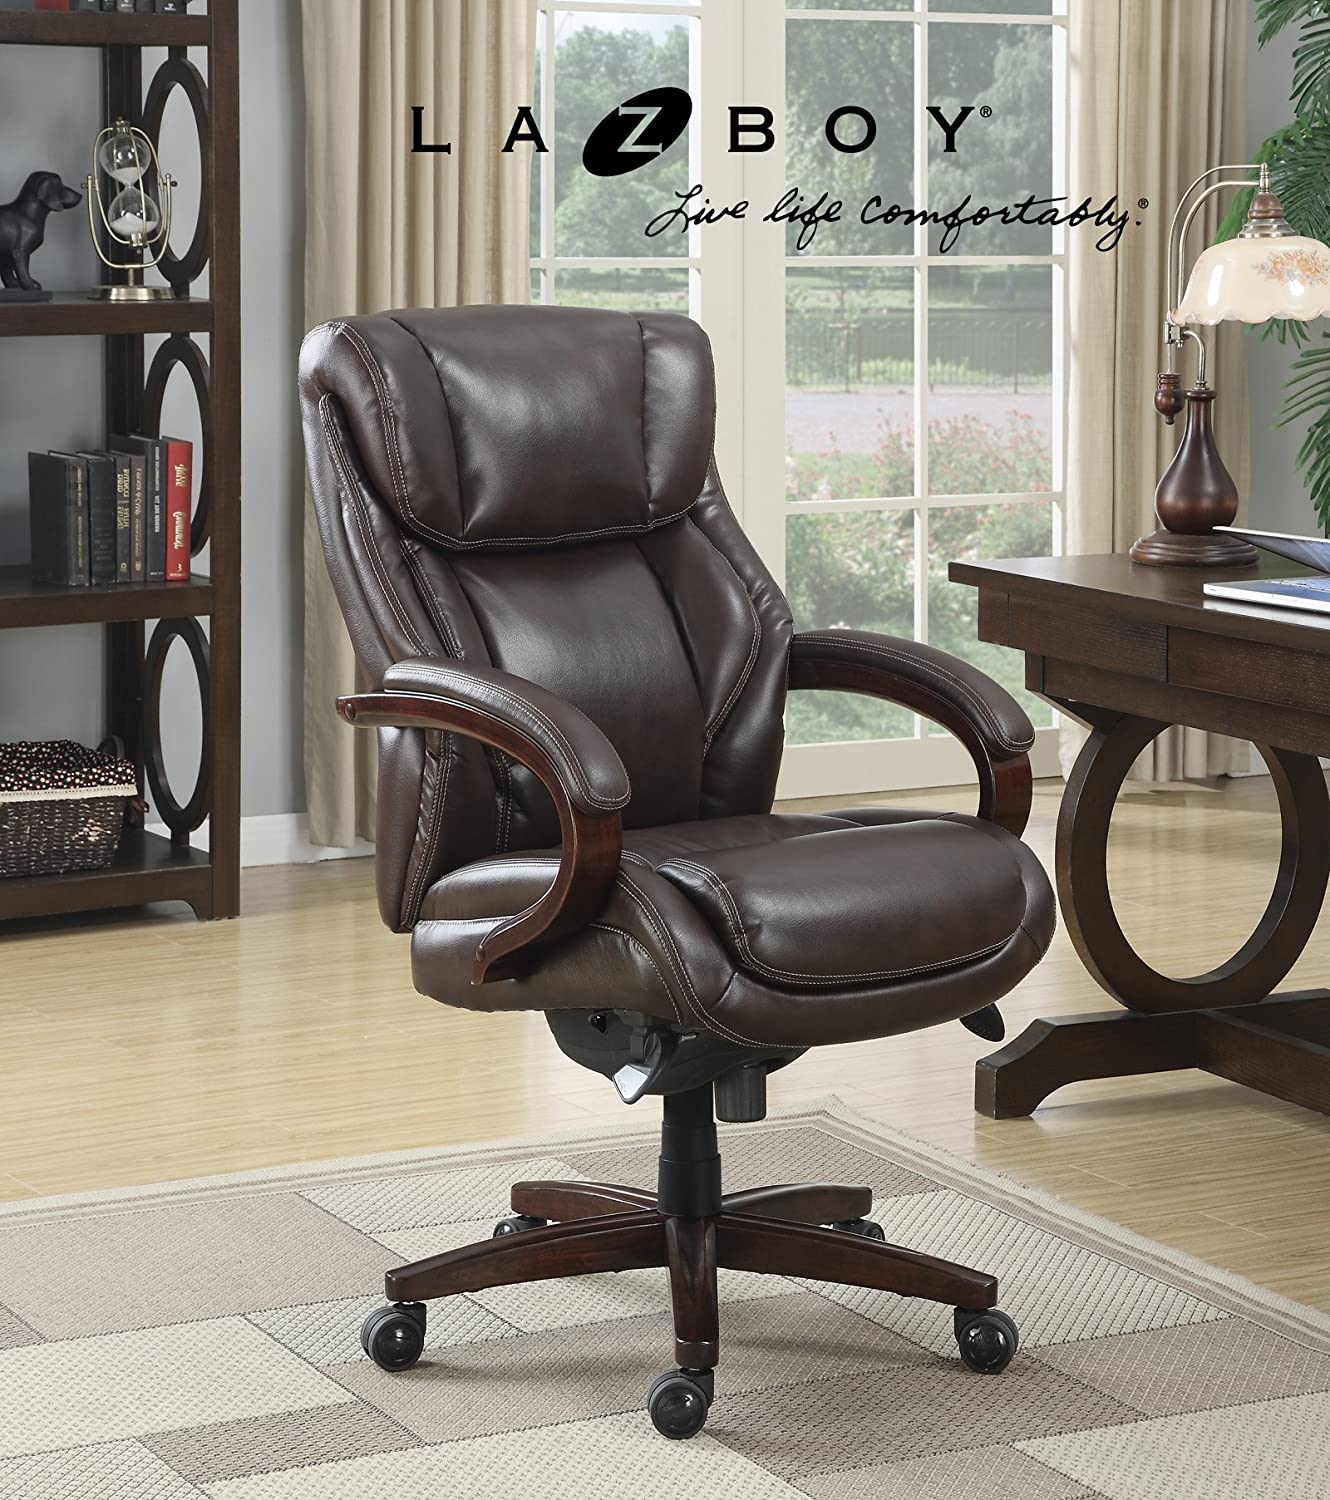 Amazon La Z Boy Bellamy Executive Bonded Leather fice Chair